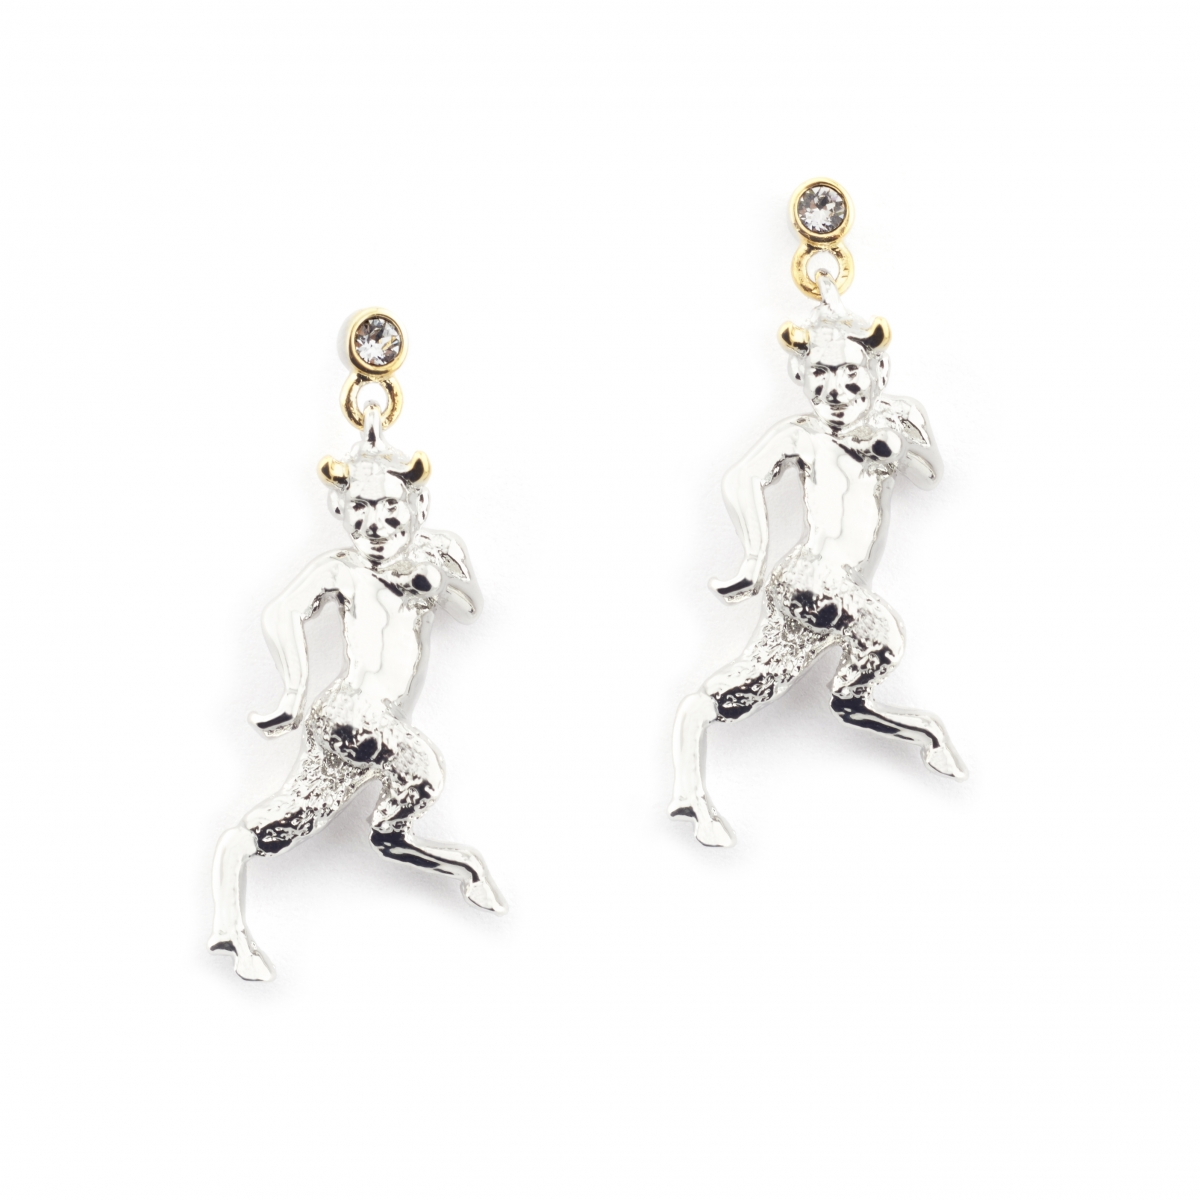 Satyr Earrings